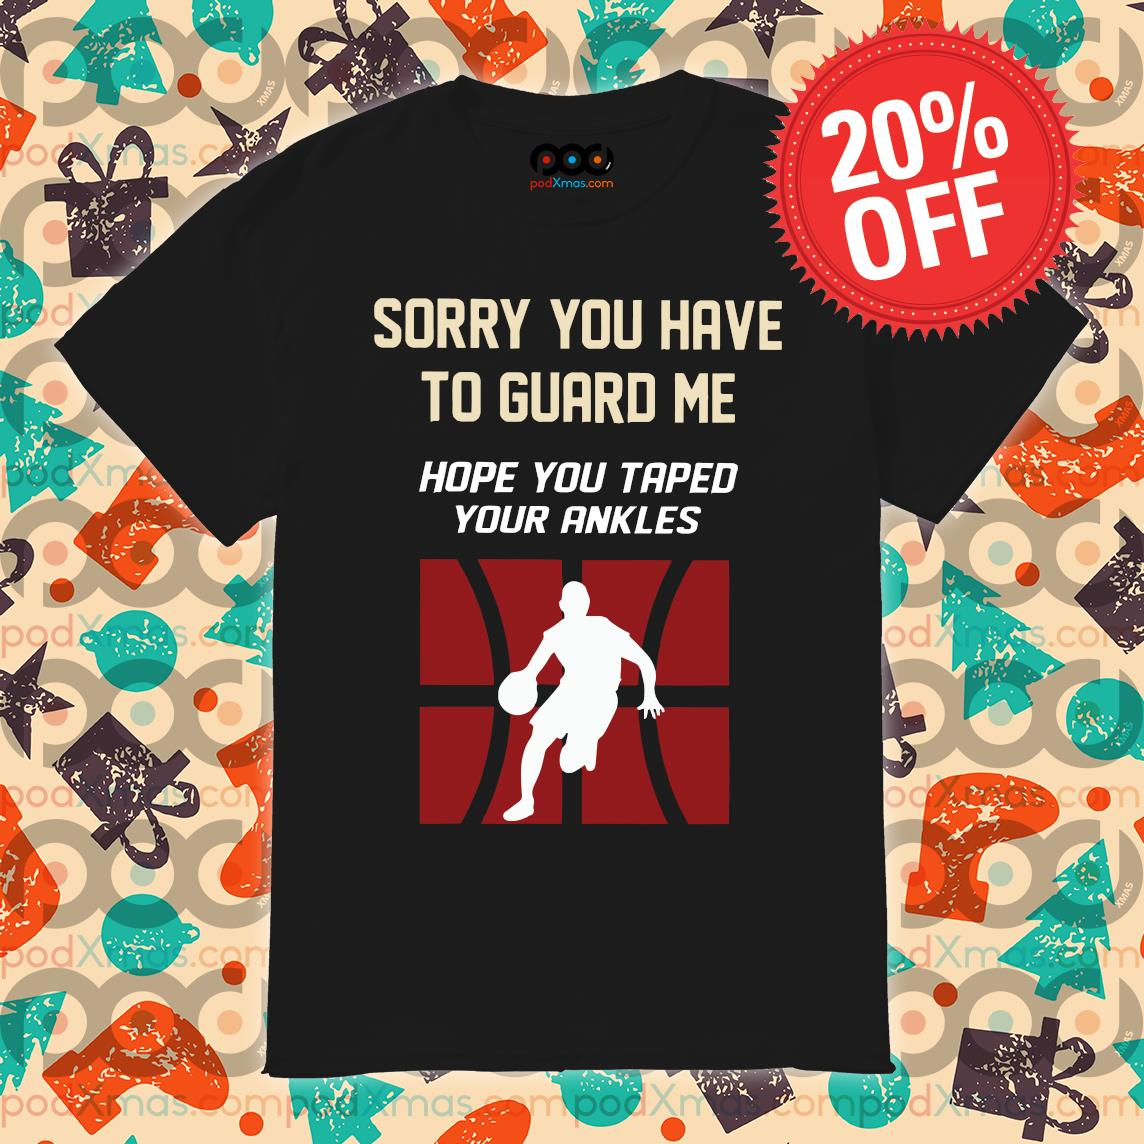 Sorry You Have To Guard Me Hope You Taped Your Ankles Basketball shirt